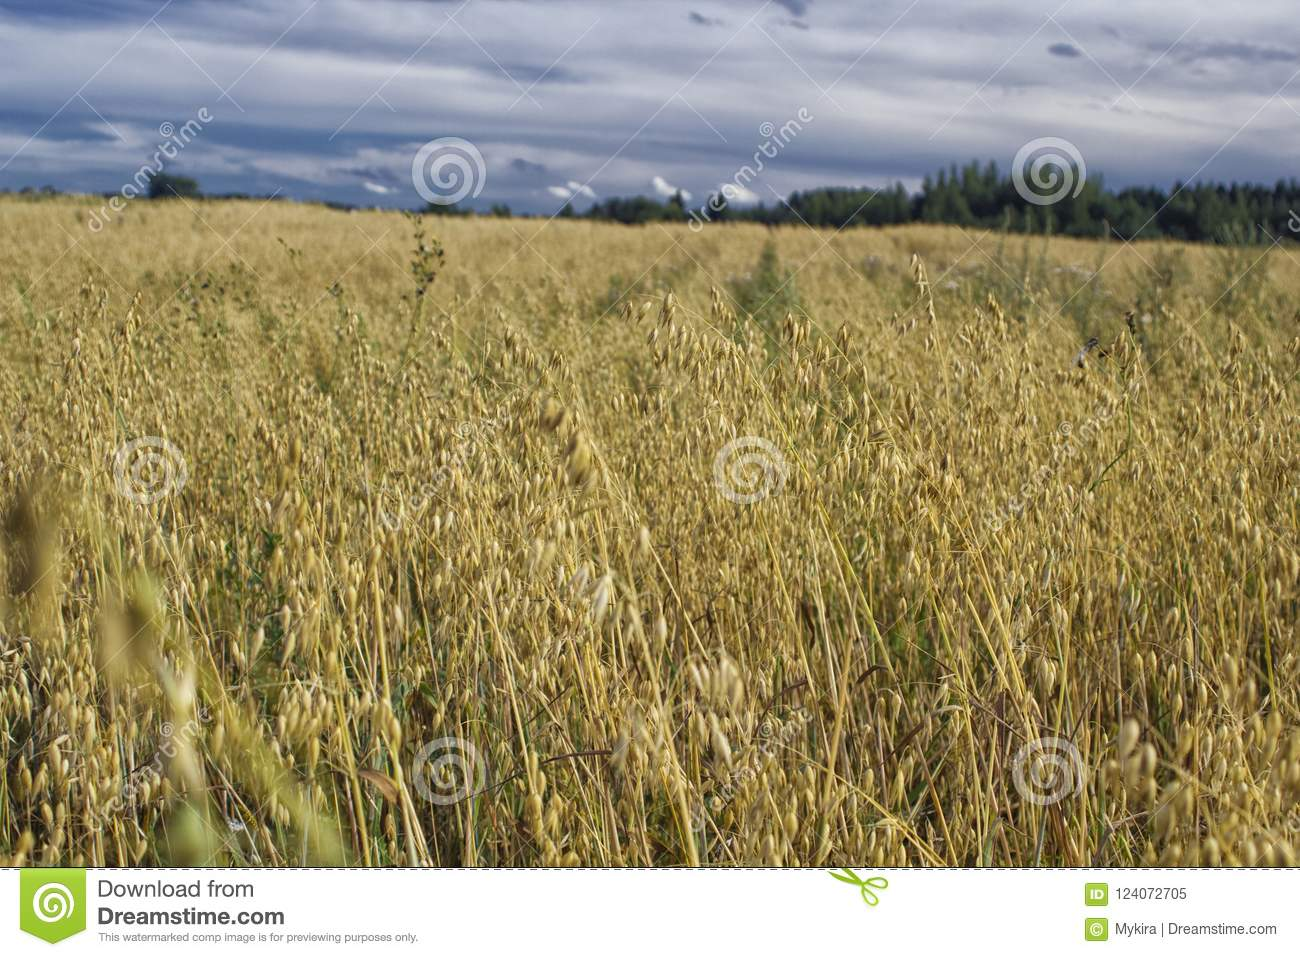 Download Rural Landscape, Terrain With Oat Fields And Cloudy Sky Stock Image - Image of flora, grass: 124072705